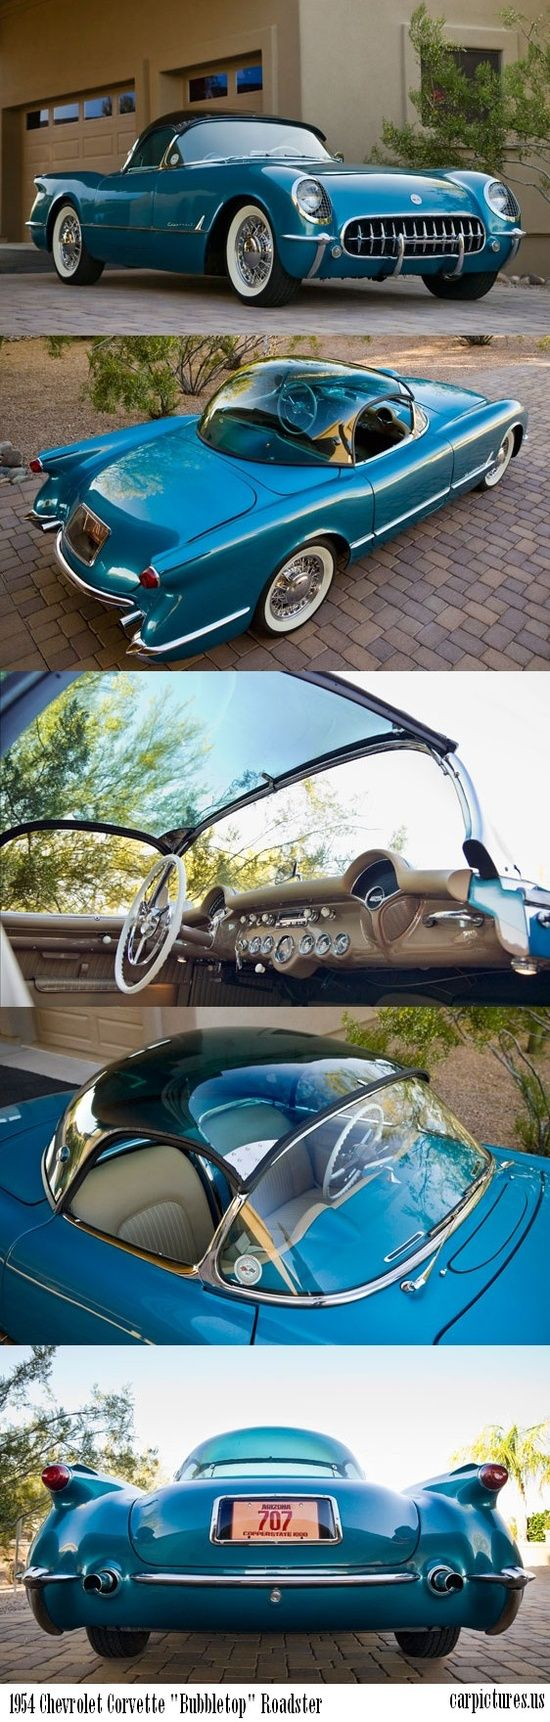 "1954 Chevrolet Corvette ""Bubbletop"" Roadster #Corvette #Chevrolet...Brought to you by House of Insurance in #EugeneOregon call for a  free price  comparison 541-345-4191."